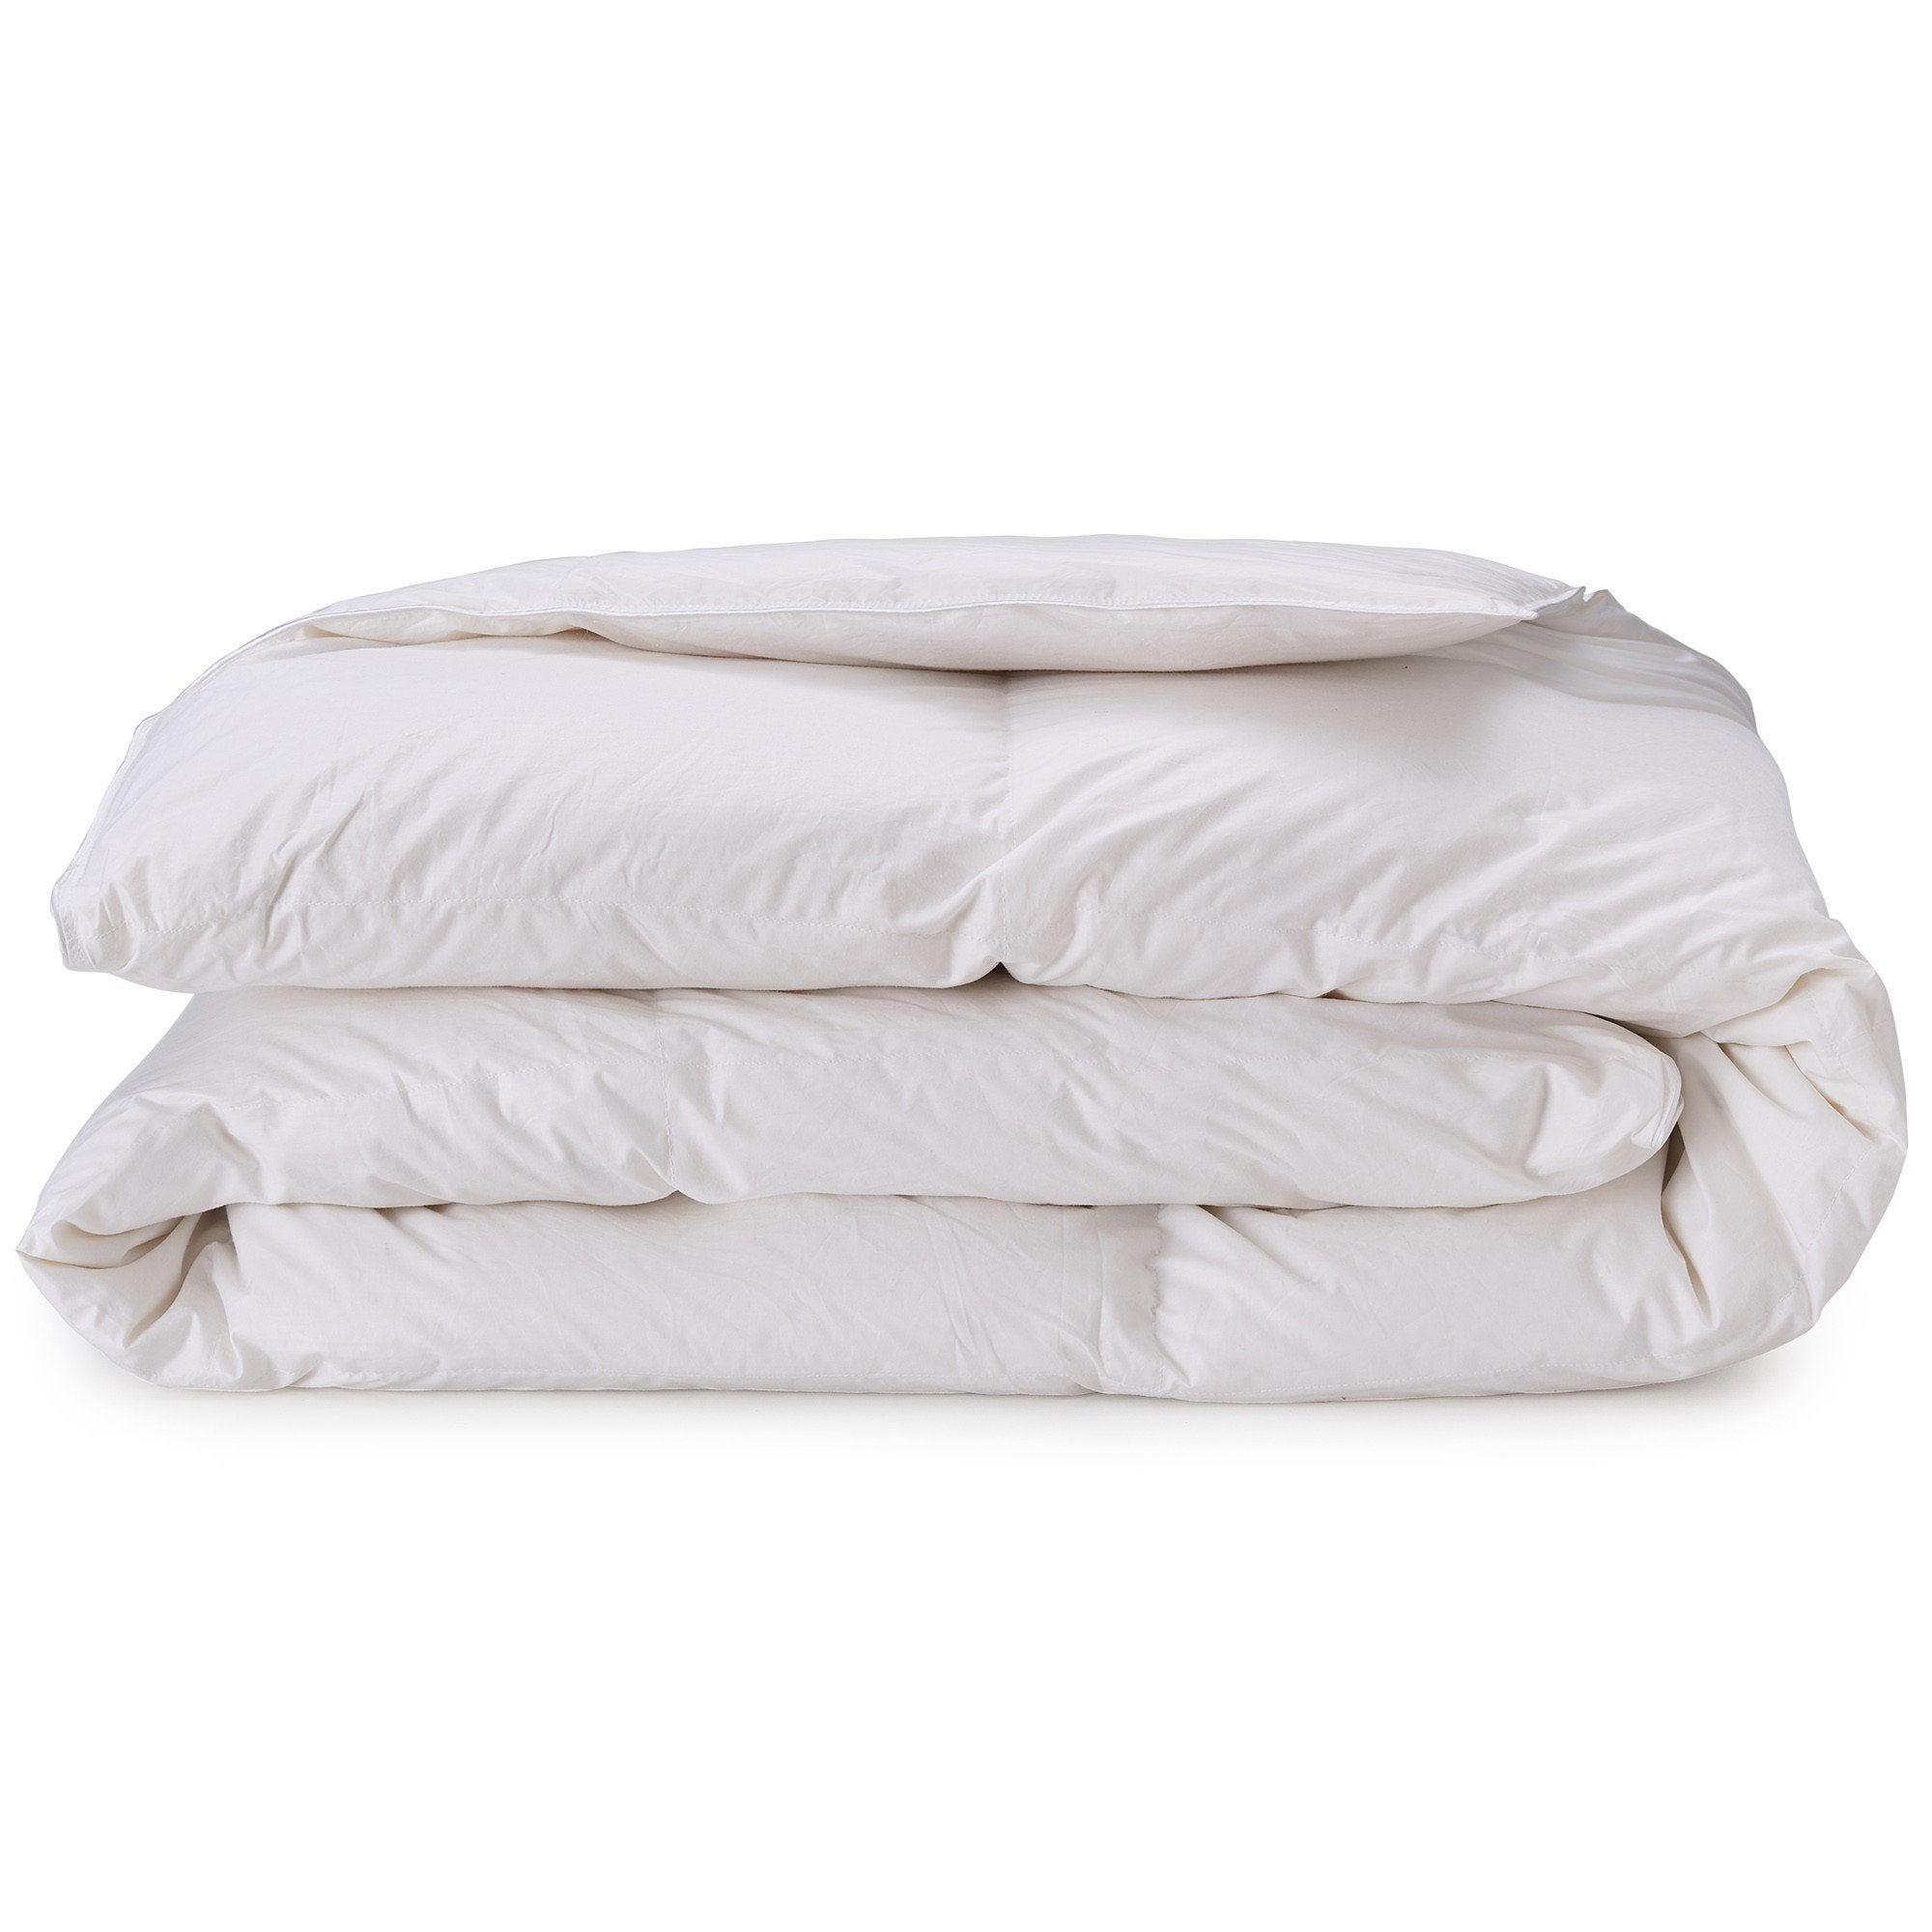 Riem duvet, white, 90% duck down & 10% duck feathers & 100% cotton